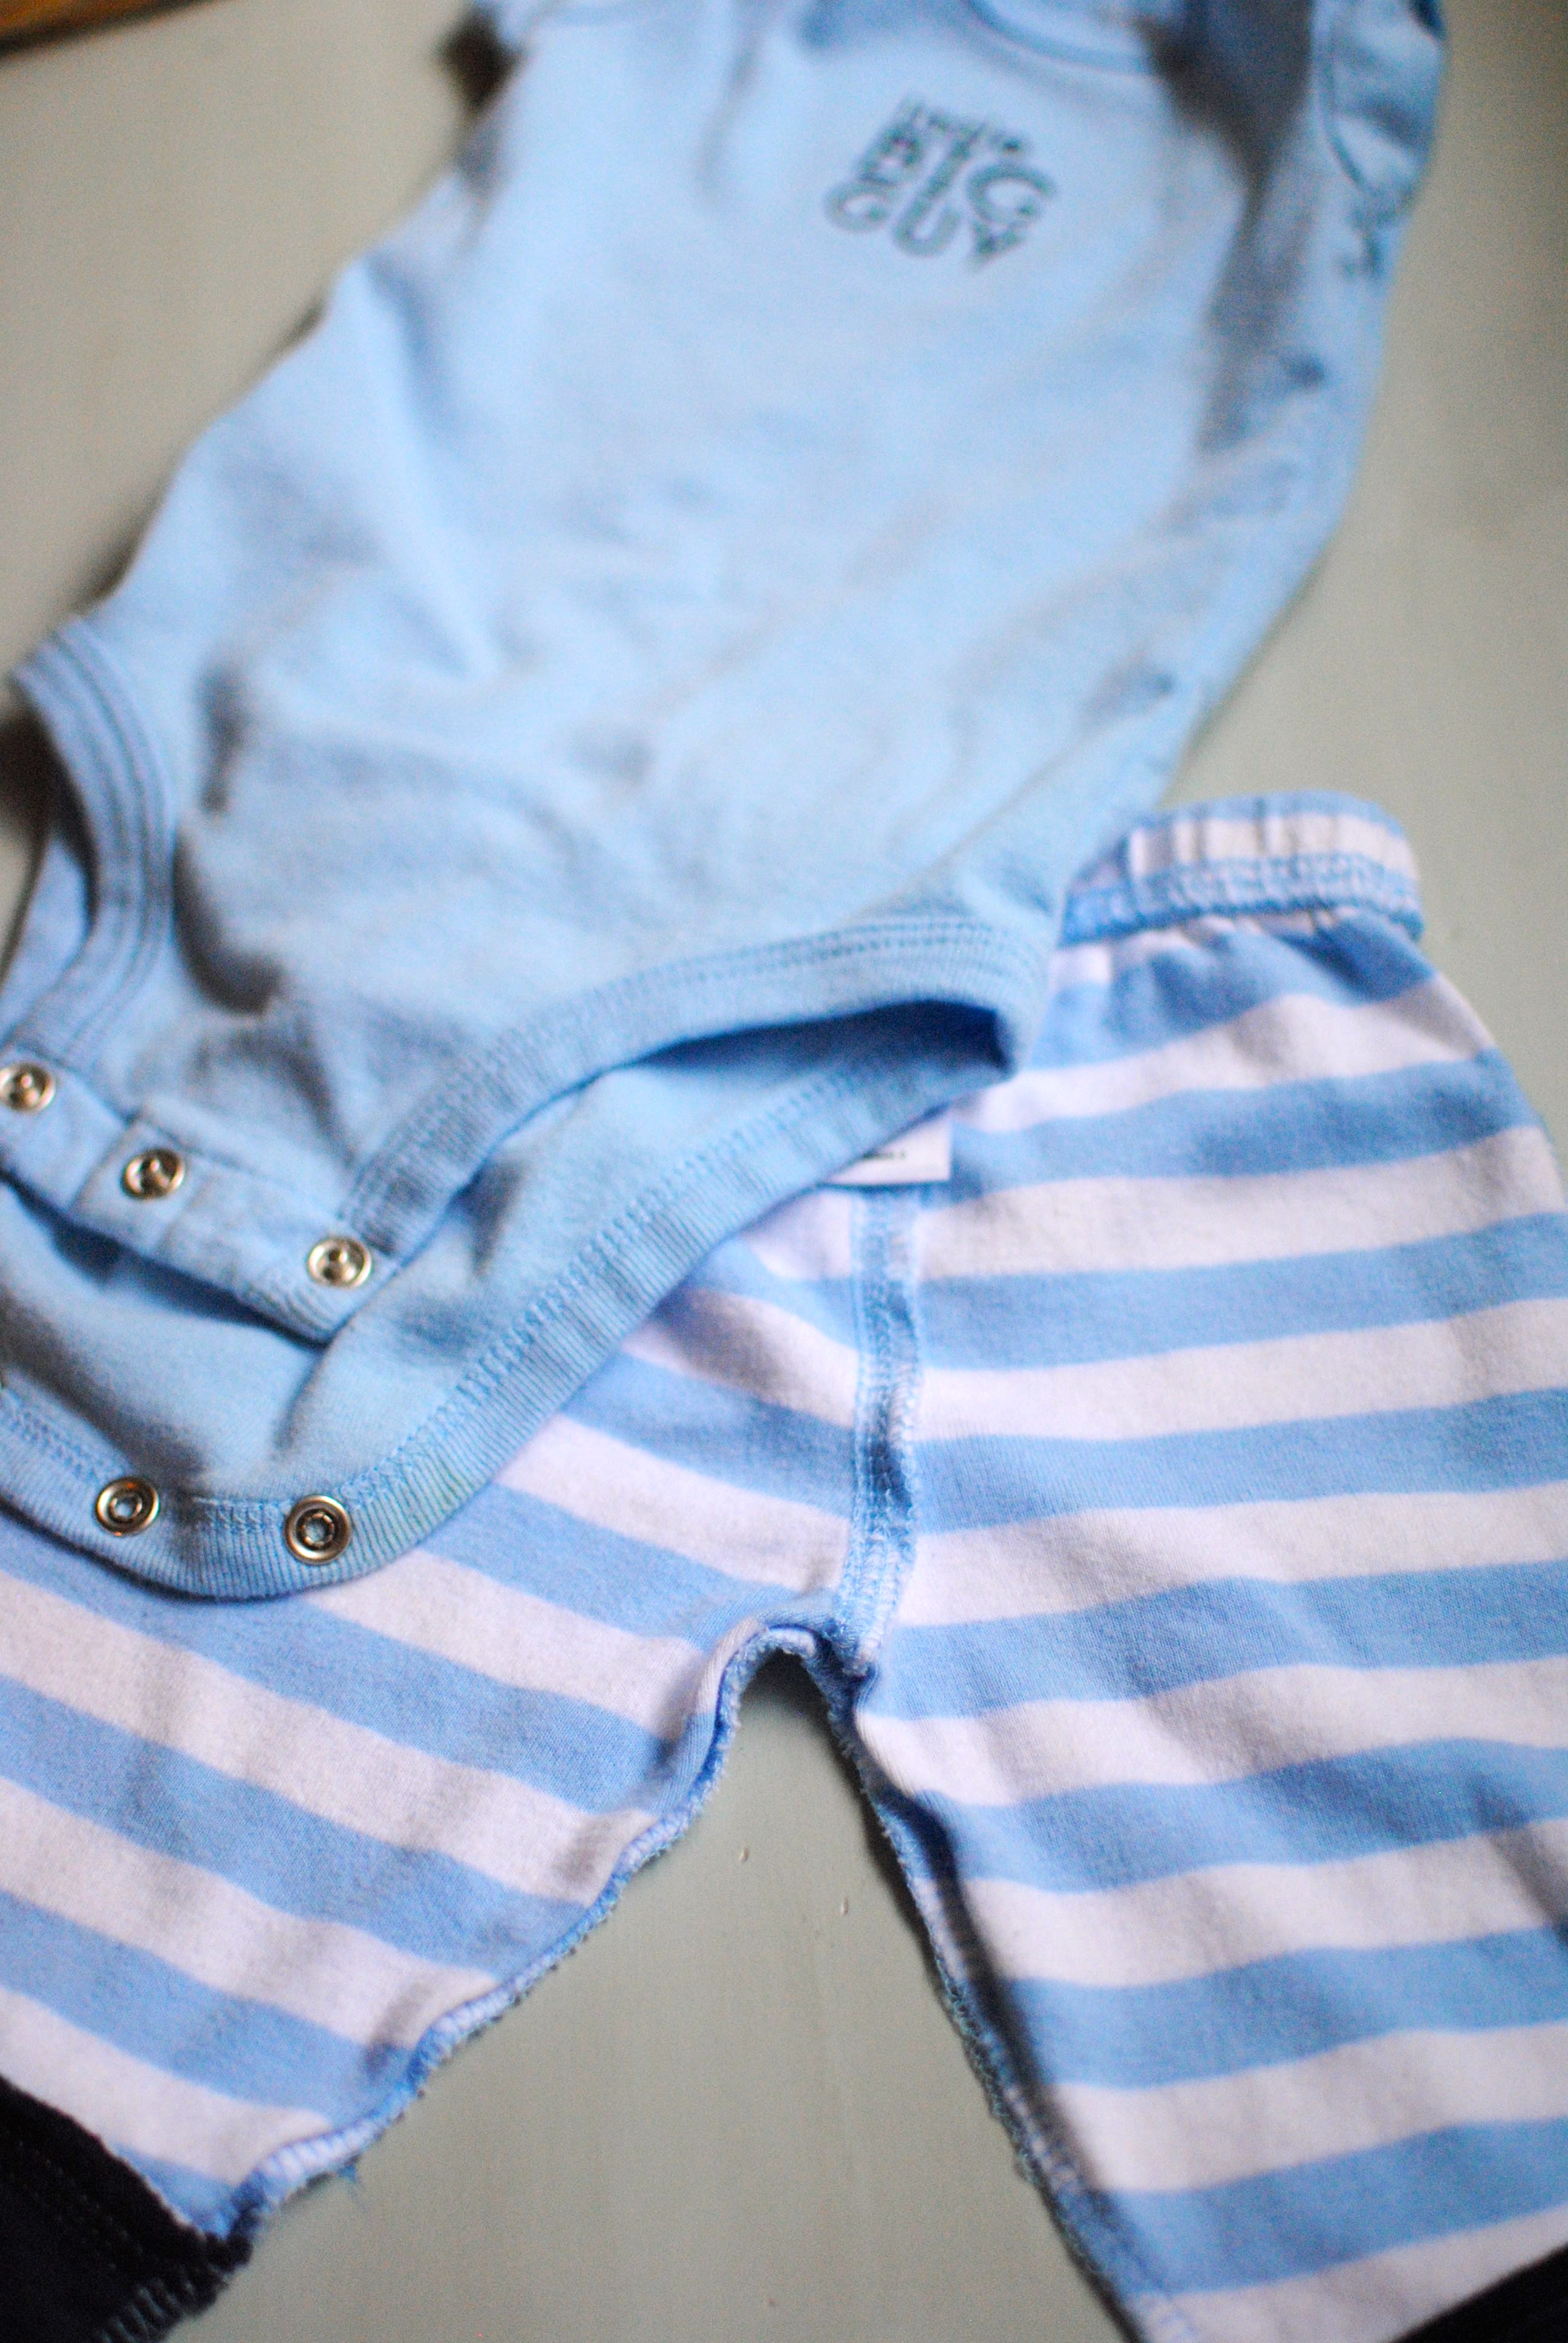 How To Remove Yellow Stains From Baby Clothing